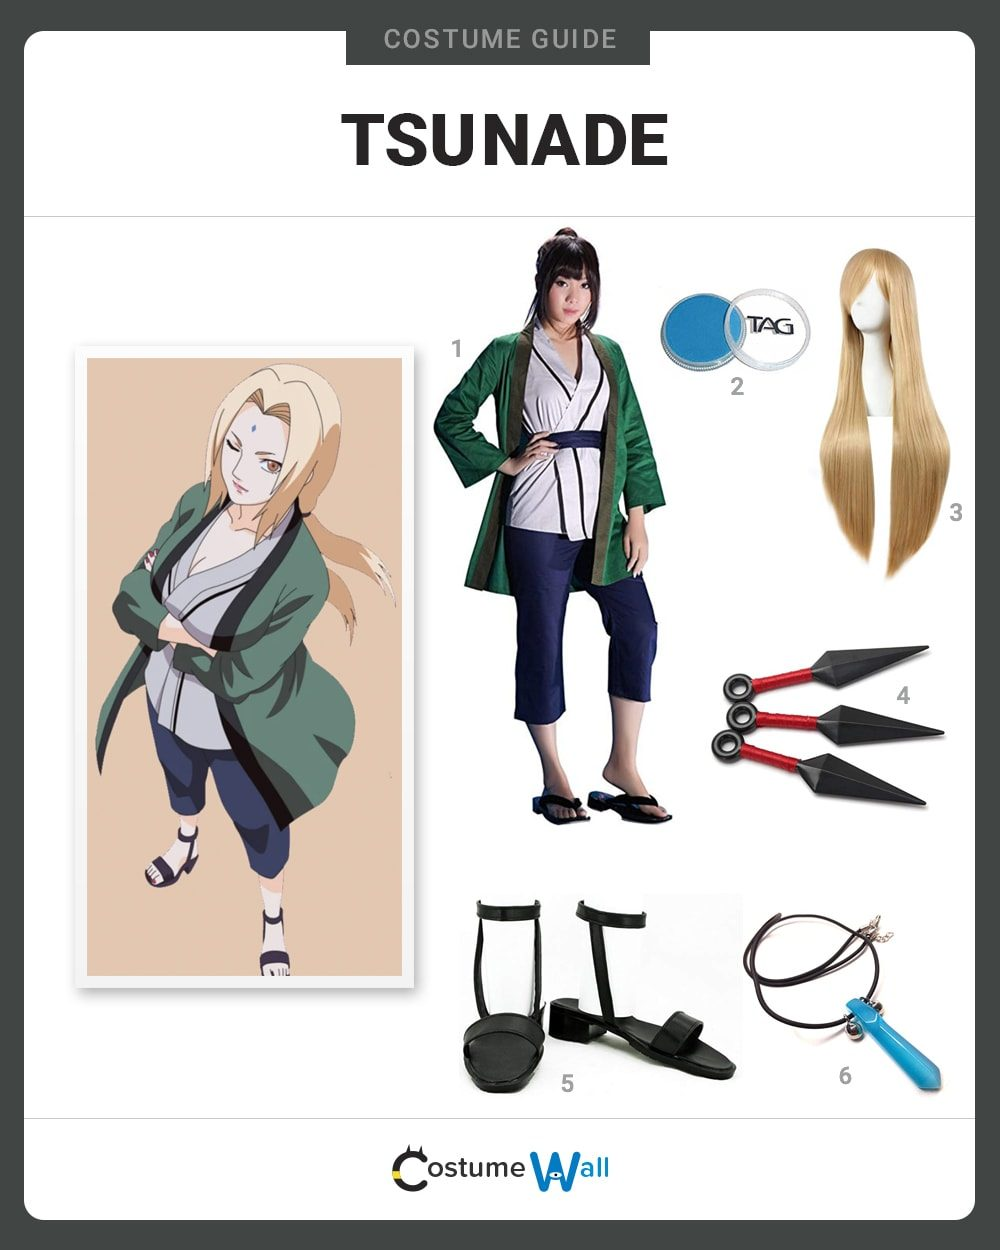 Tsunade Costume Guide